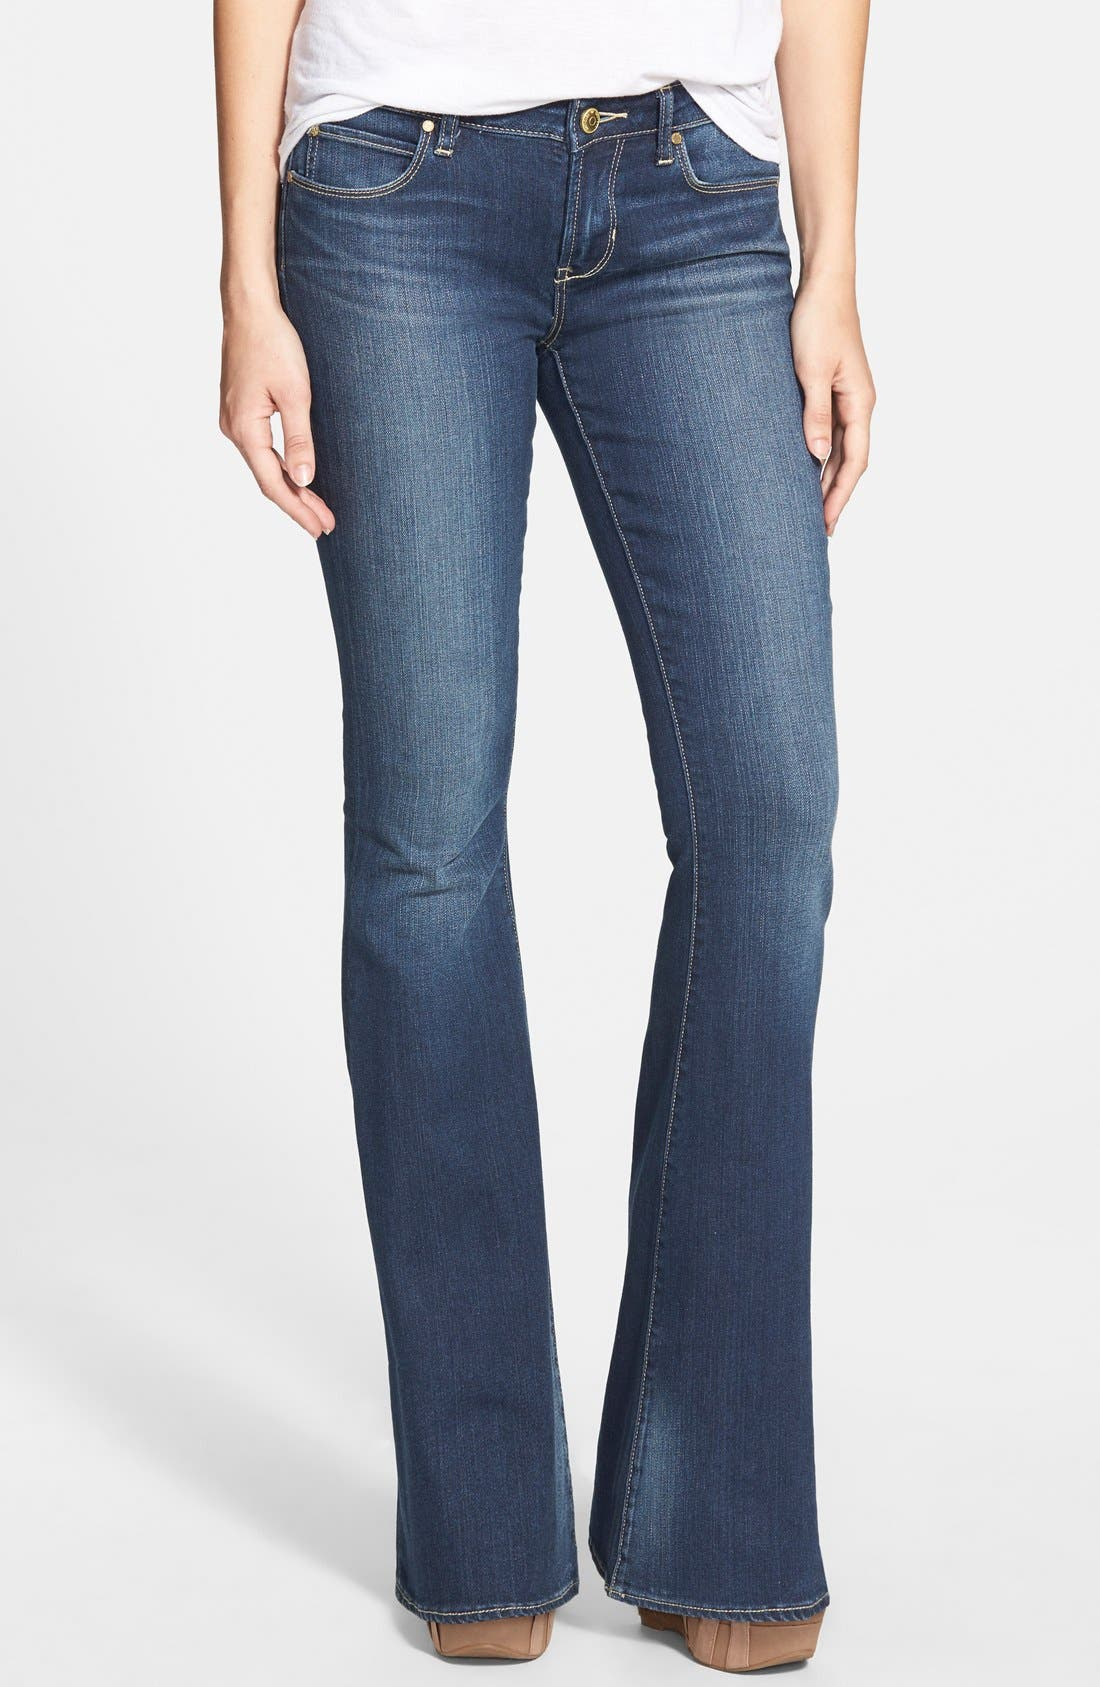 'Faith' Flare Jeans,                             Main thumbnail 1, color,                             400